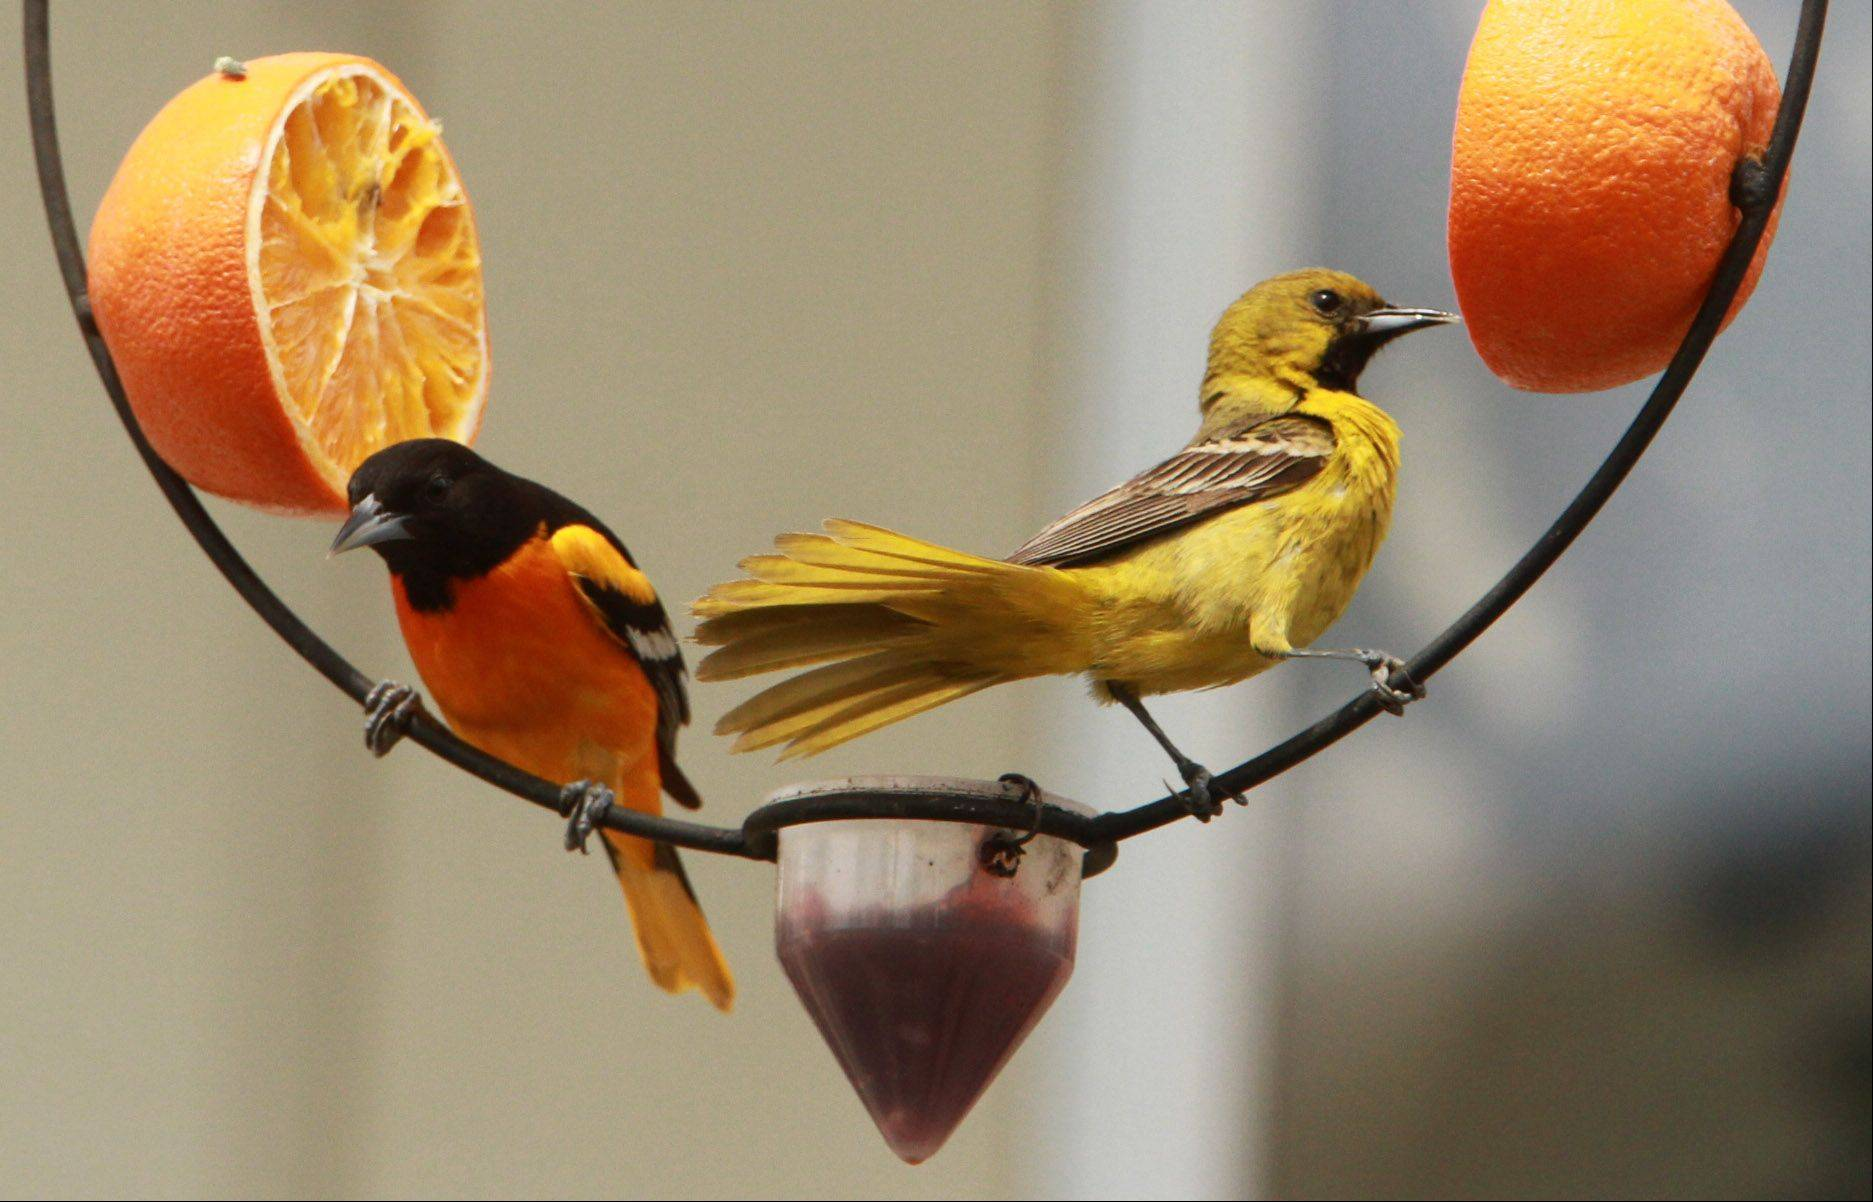 A male Baltimore oriole, left, and a male orchard oriole eat from orange halves and a dish filled with jelly on a ring feeder set up in Lori Sweeny's backyard in Mundelein.